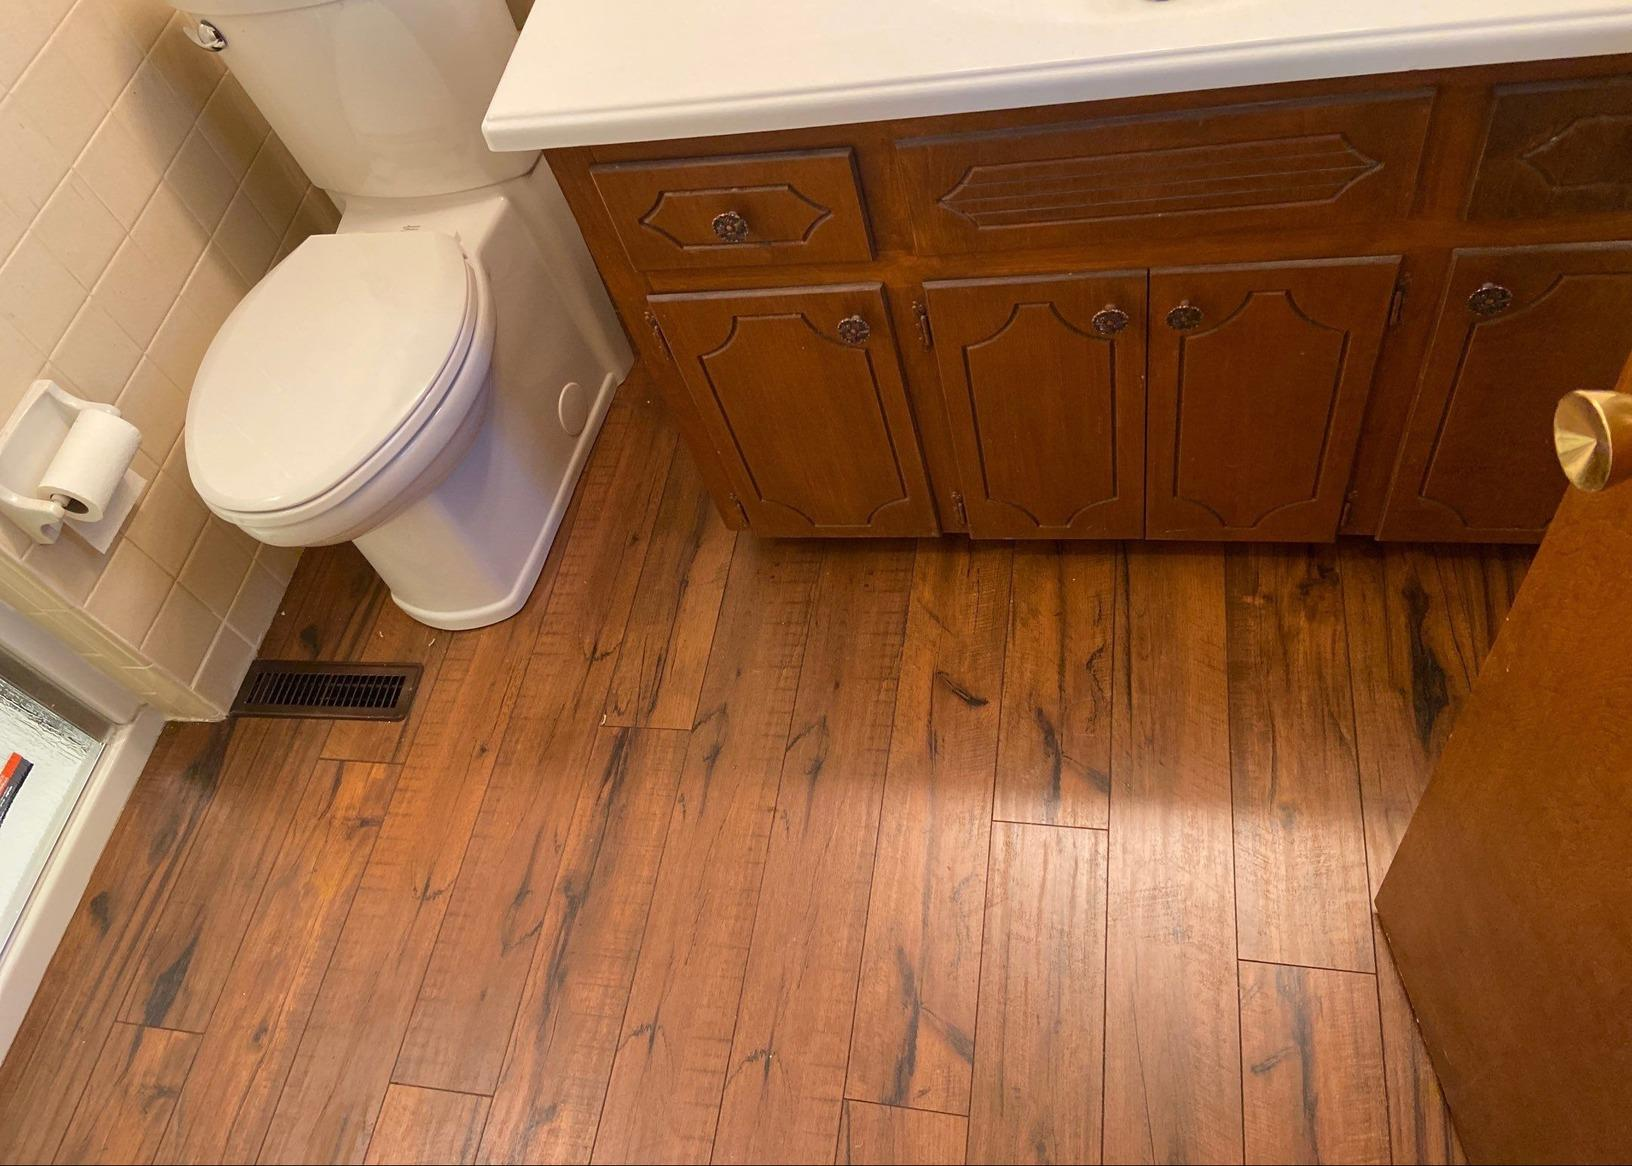 Gladstone, MO Upstairs Bathroom with New Laminate Flooring - After Photo